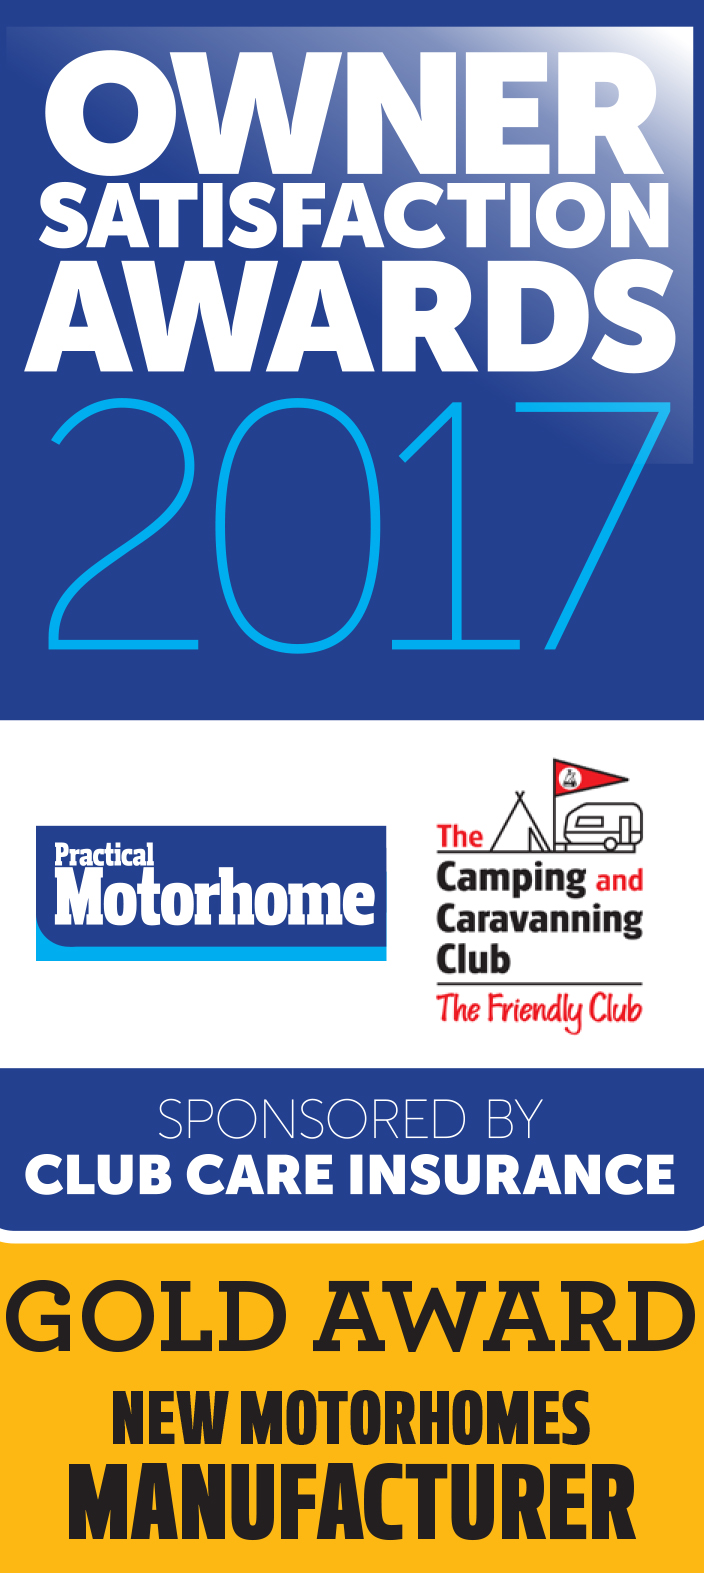 New Motorhomes Manufacturer awards